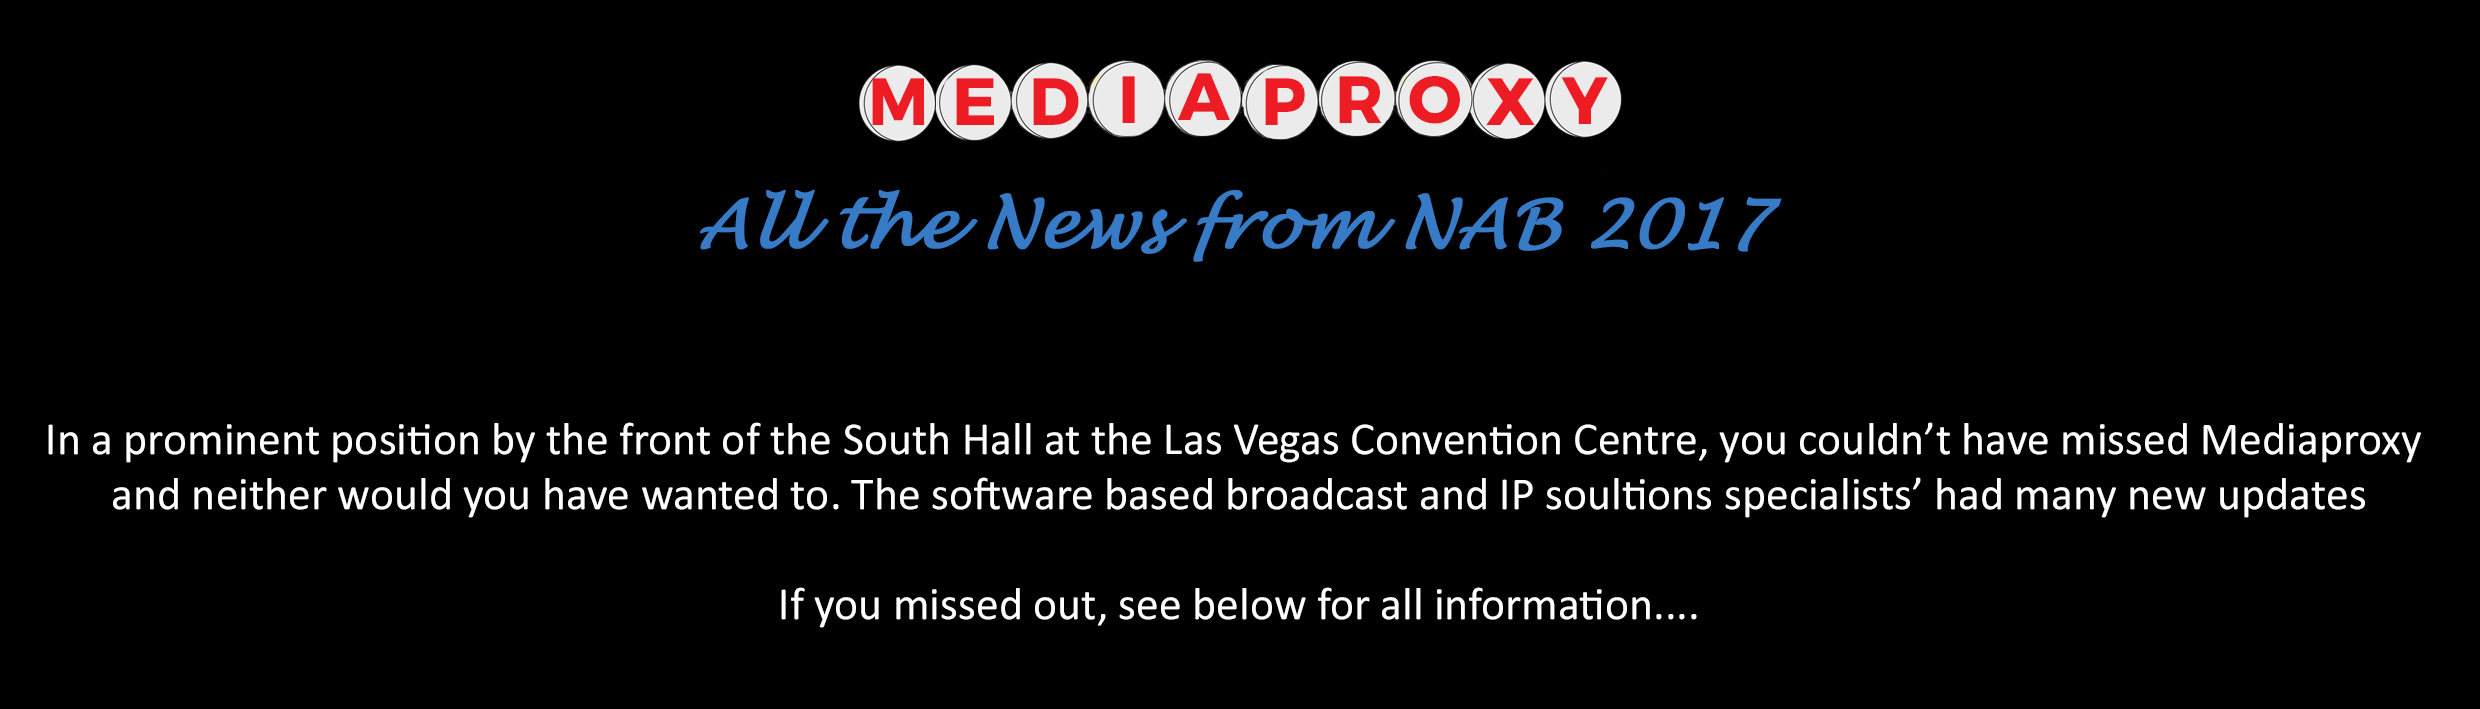 Post NAB 2017 News_The IP Solutions Specialists'_Mediaproxy